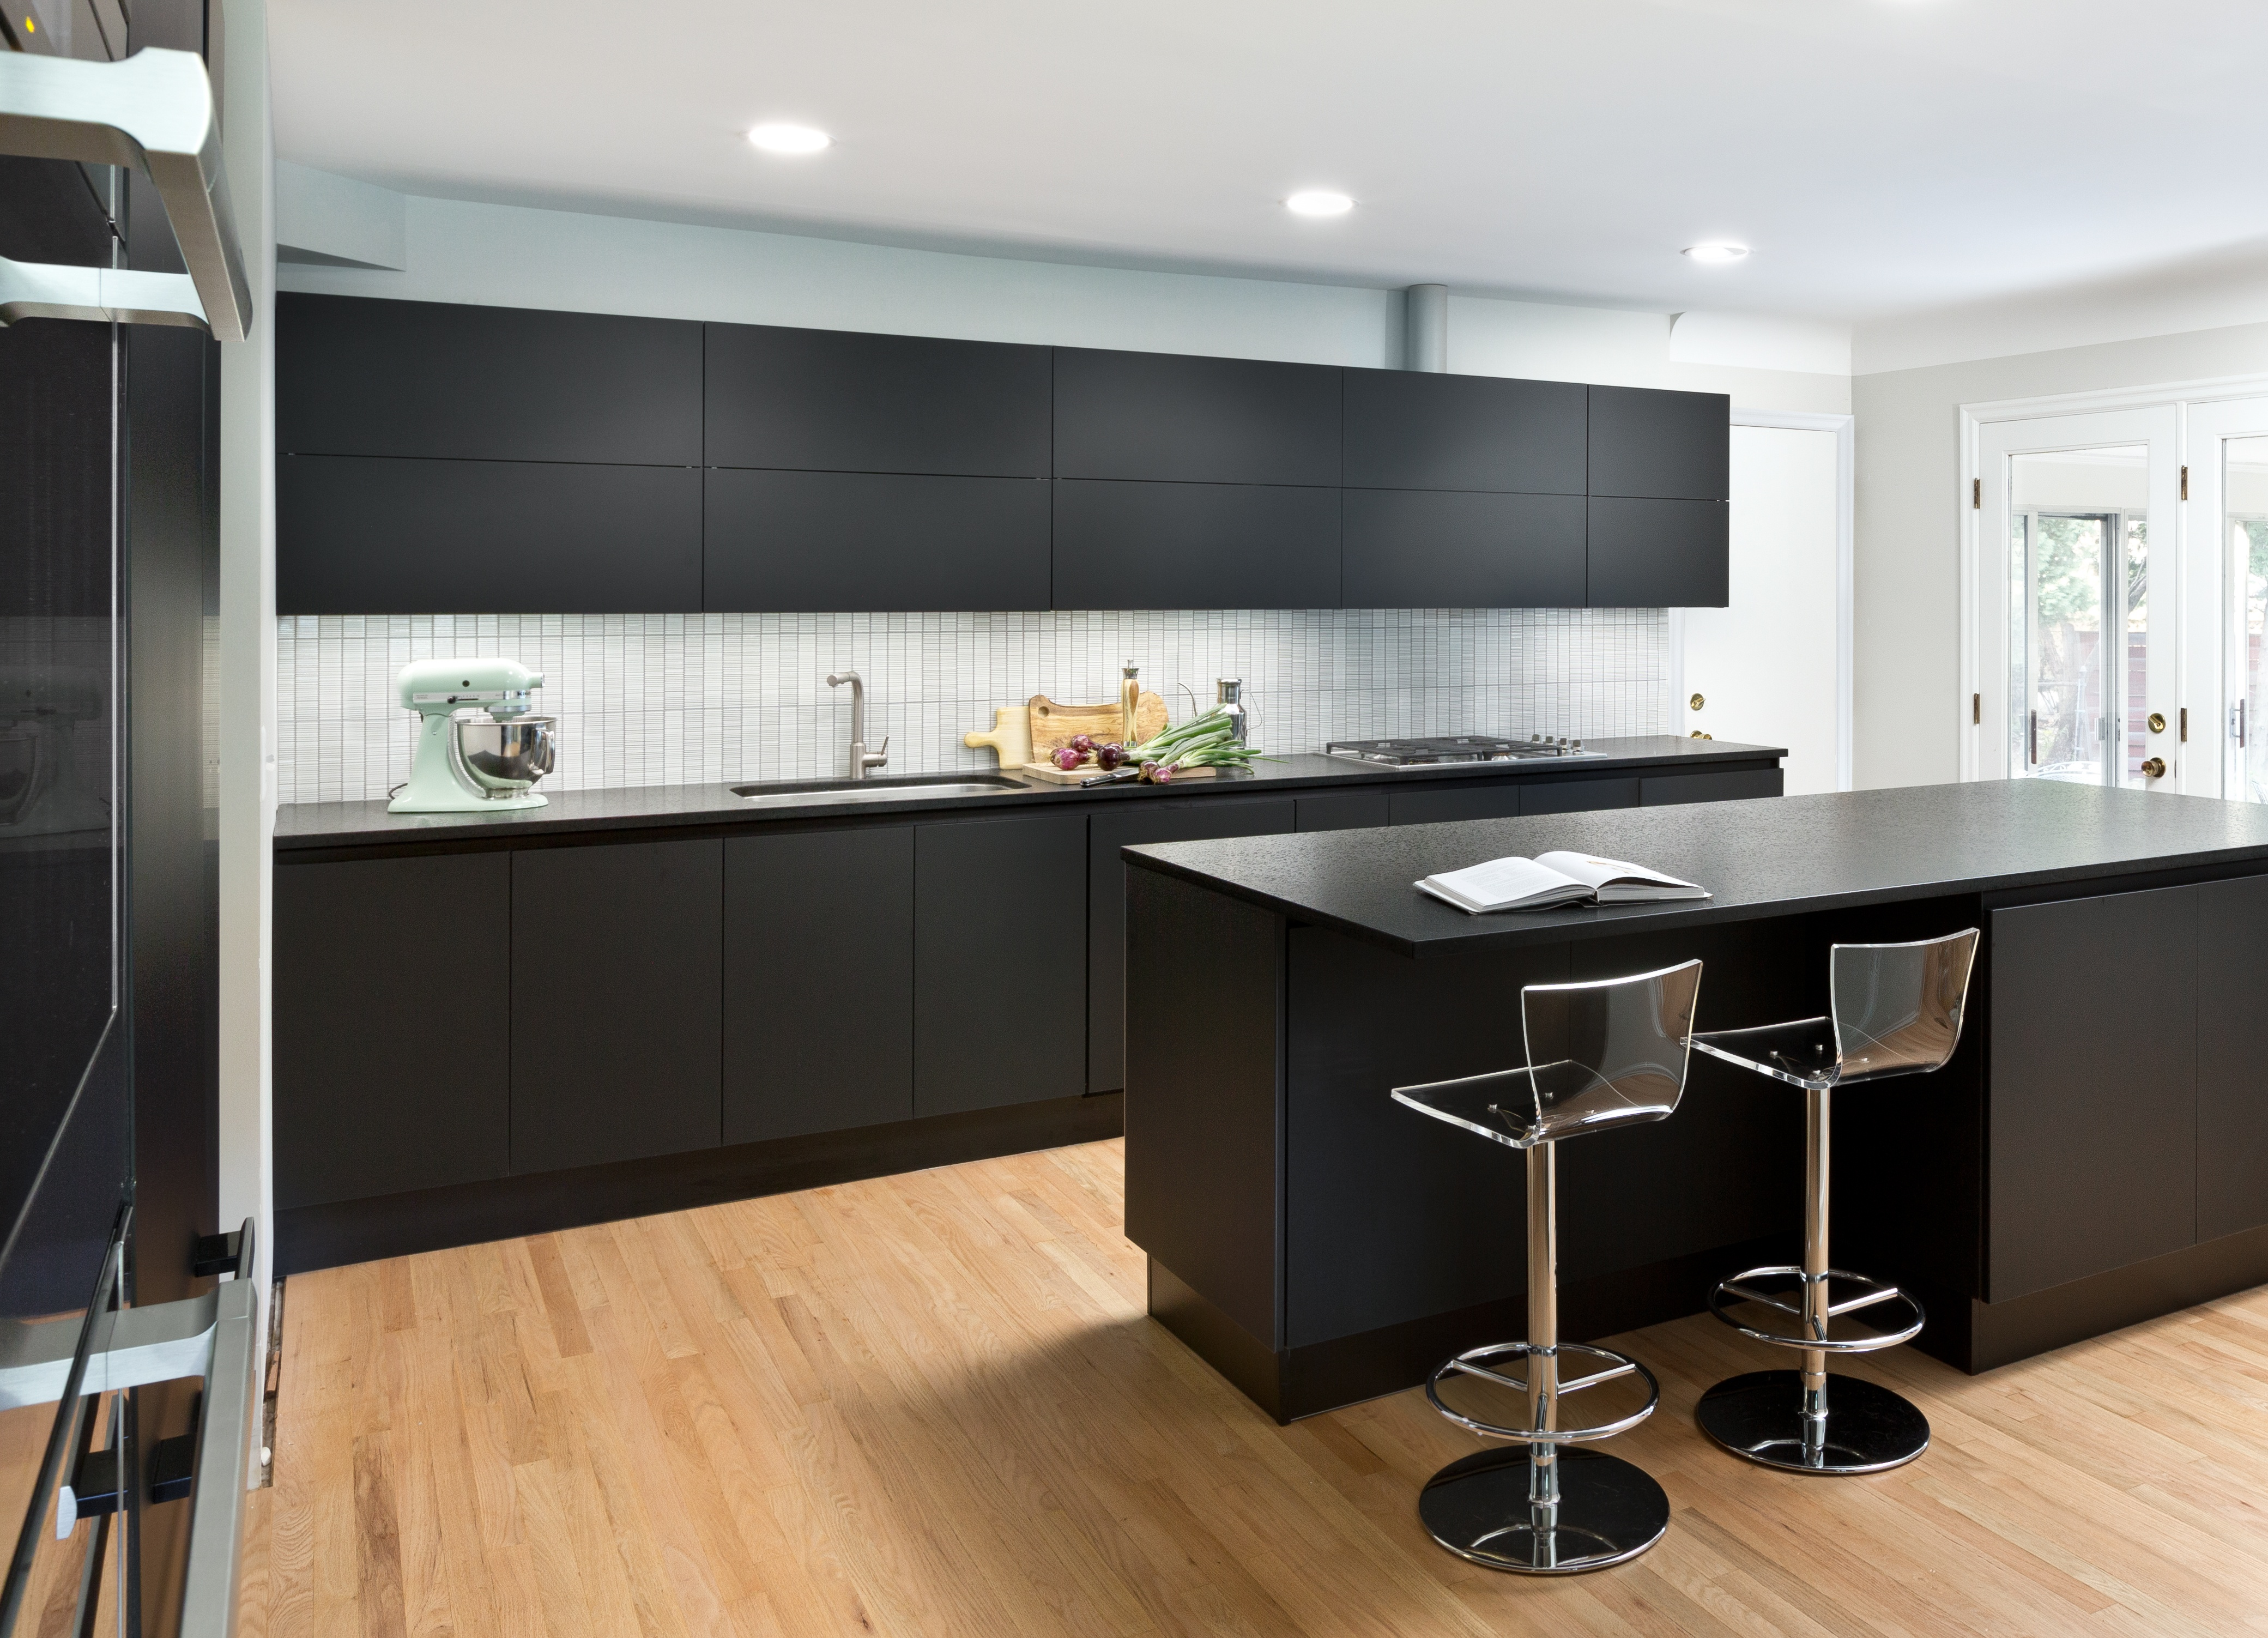 Cambrian_Black_Antiqued_Scavolini_Kitchen.jpg